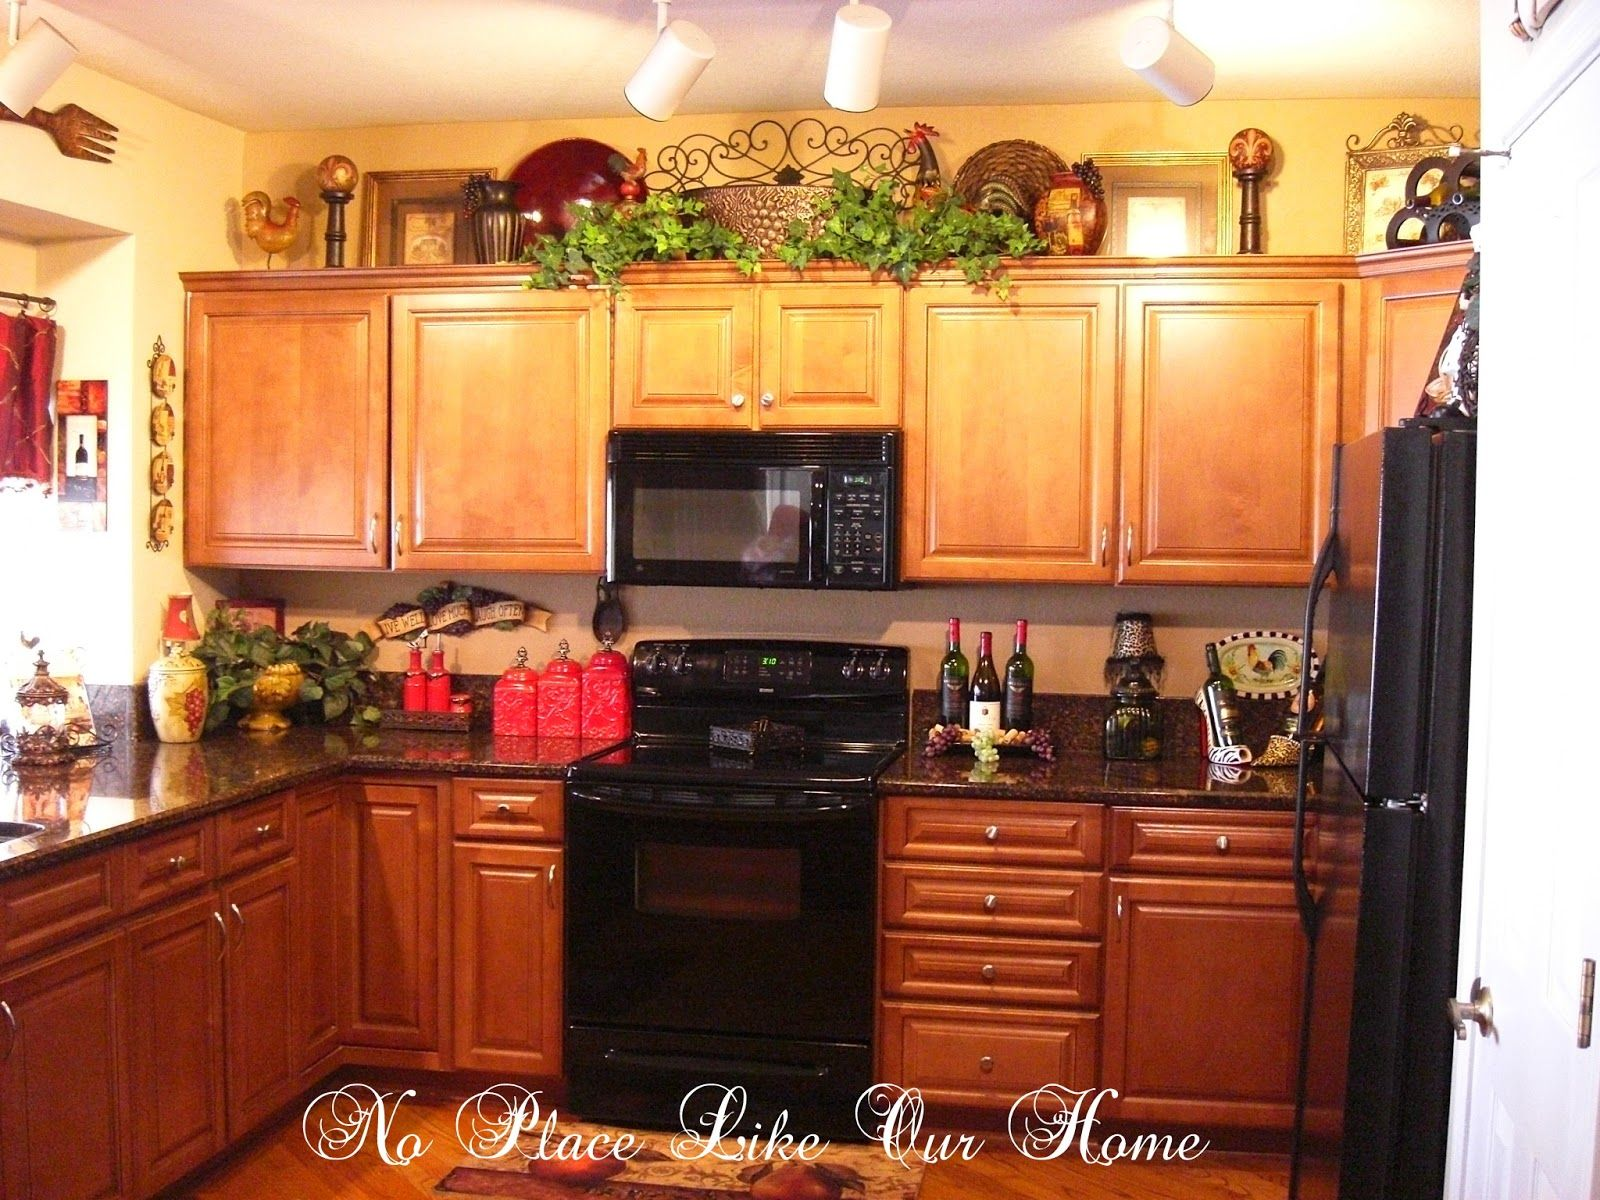 No place like our home new kitchen vignetteus home decr